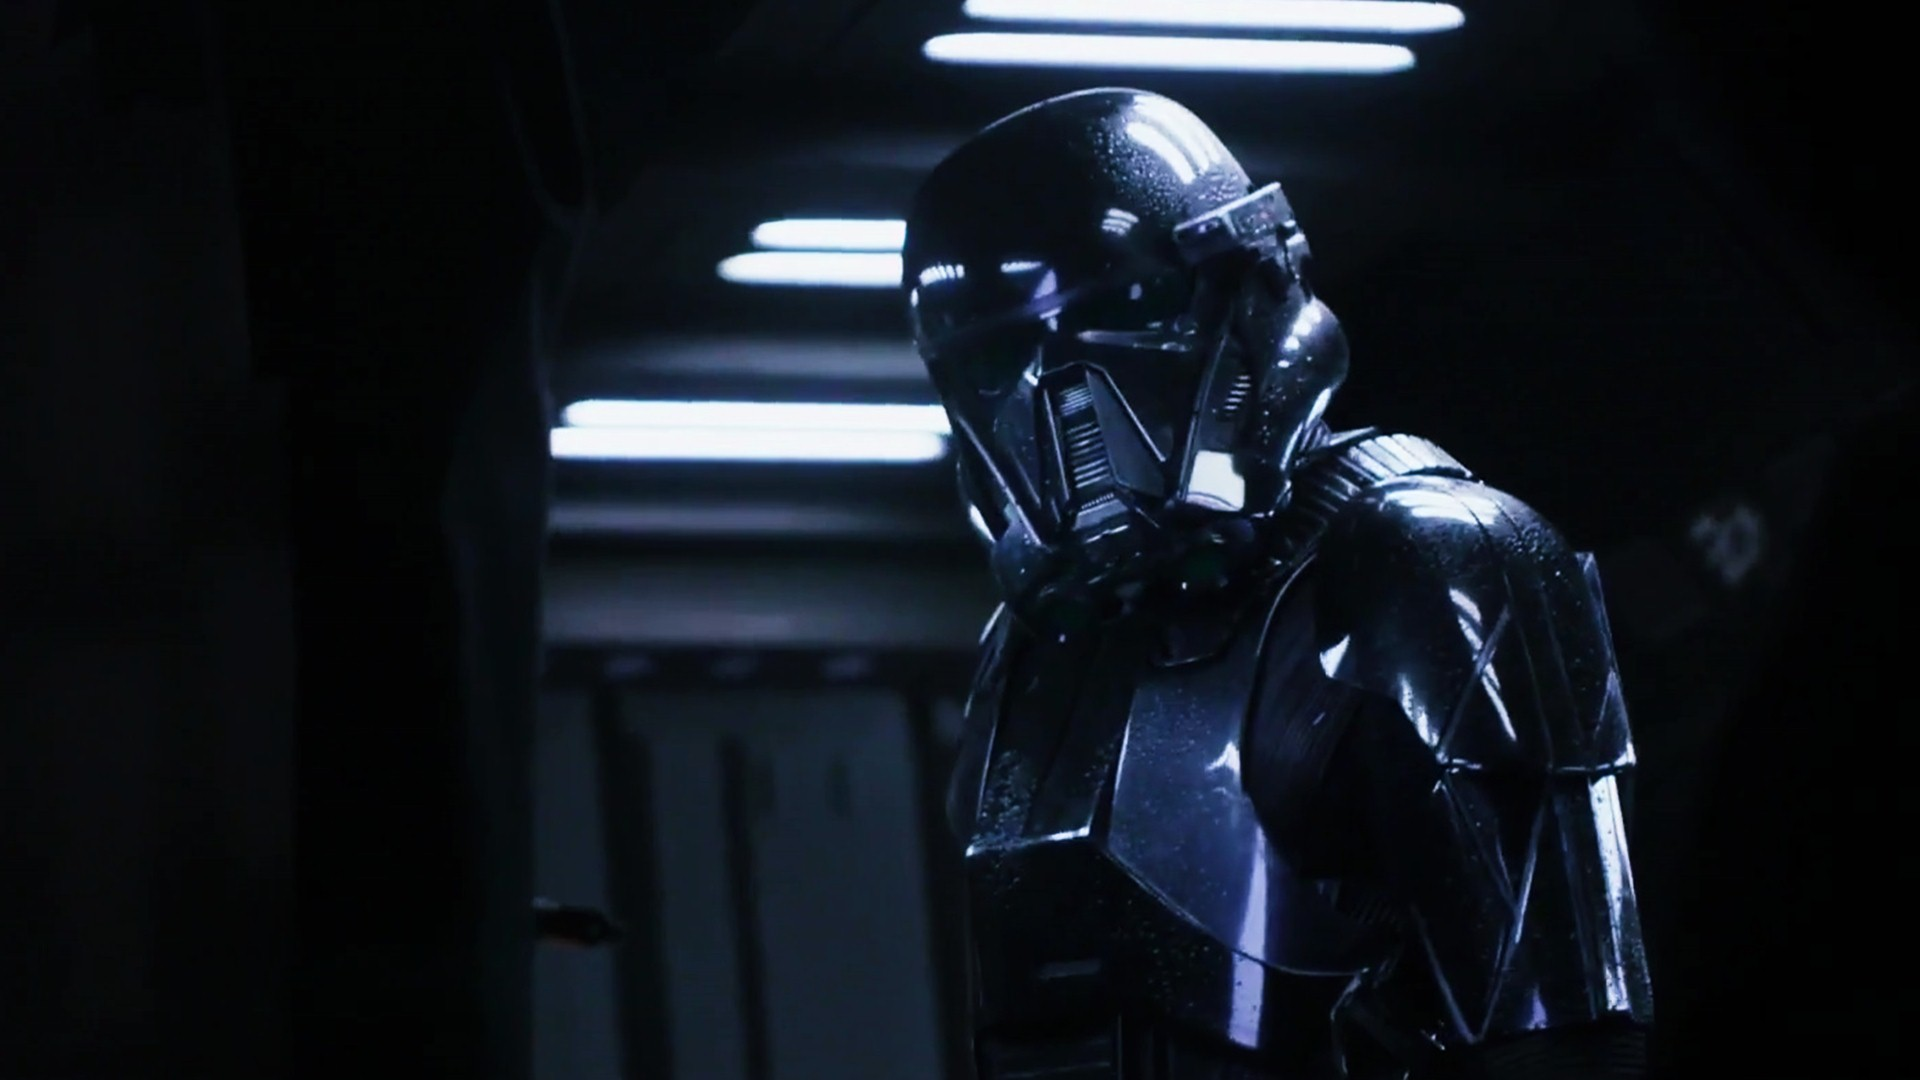 rogue-one-a-star-wars-story-2016-wallpaper-03854